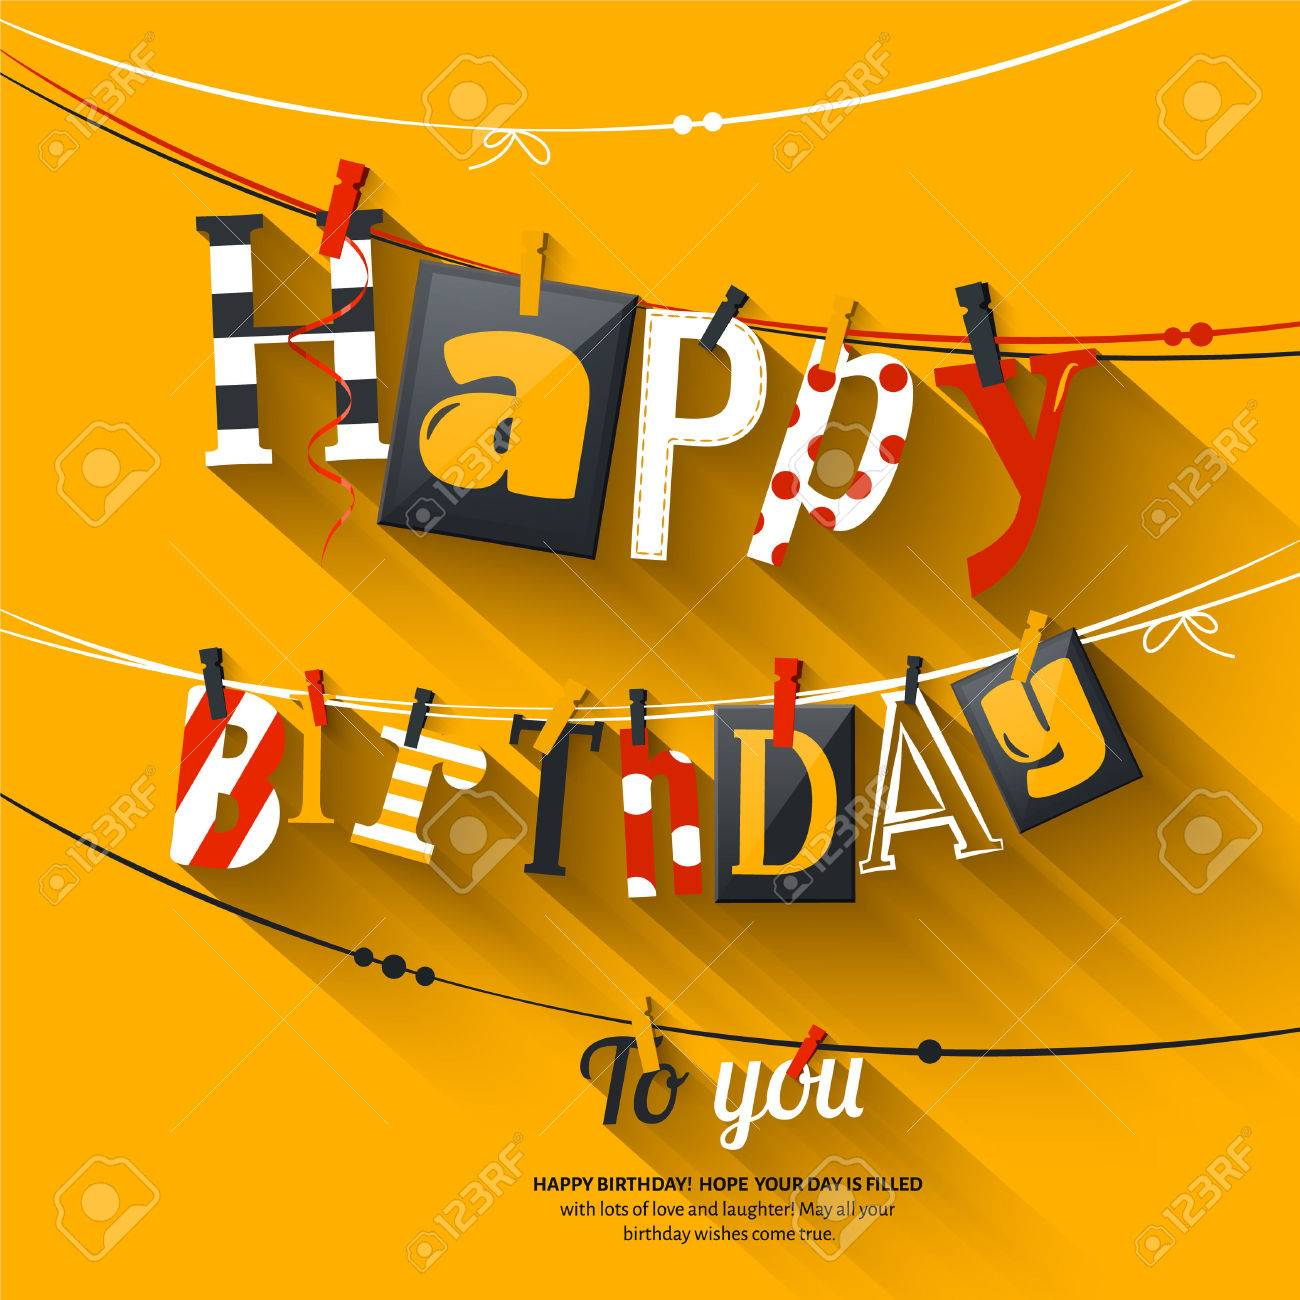 Birthday card. Clothespin and colorful letters hang on rope. - 54754486